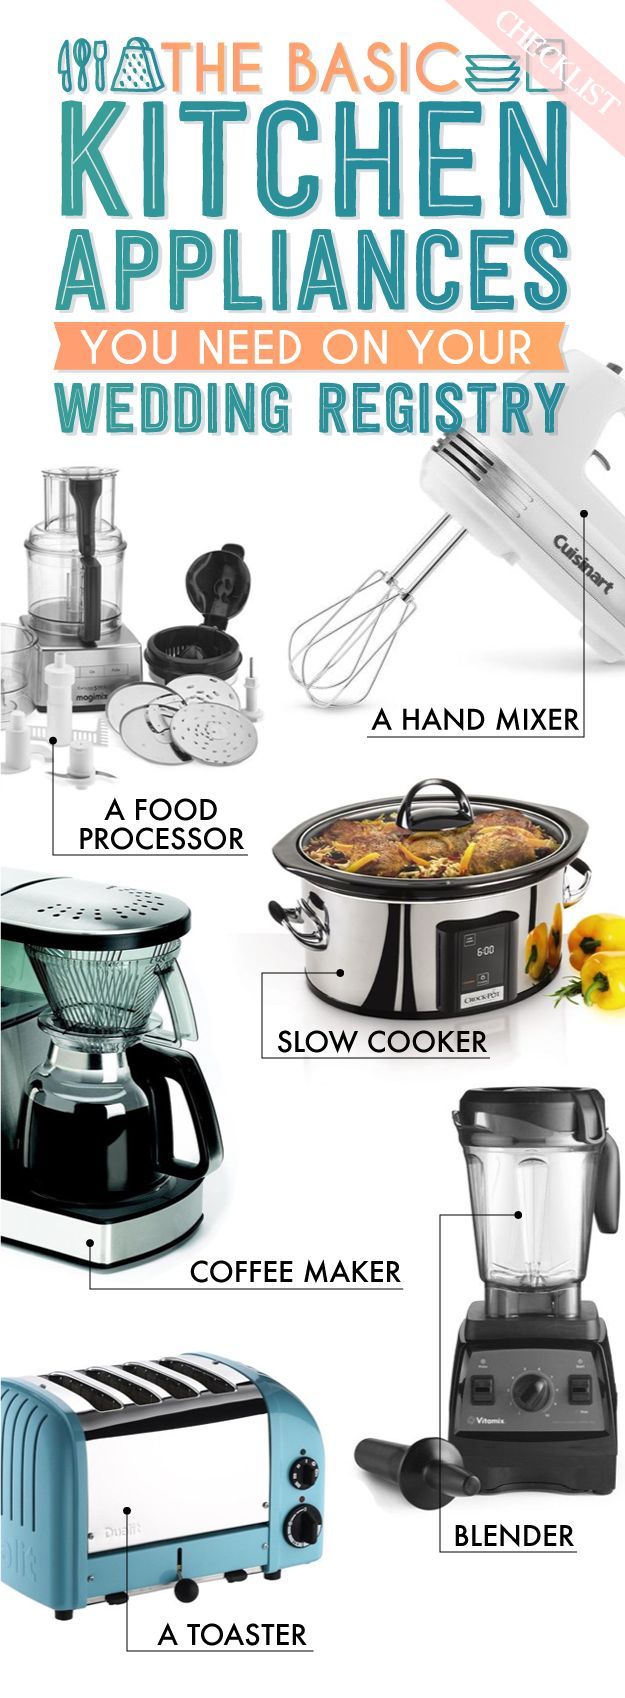 Uncategorized Basic Kitchen Appliances 26 best images about wedding registry checklists on pinterest kitchen appliances can make or break your sure includes the